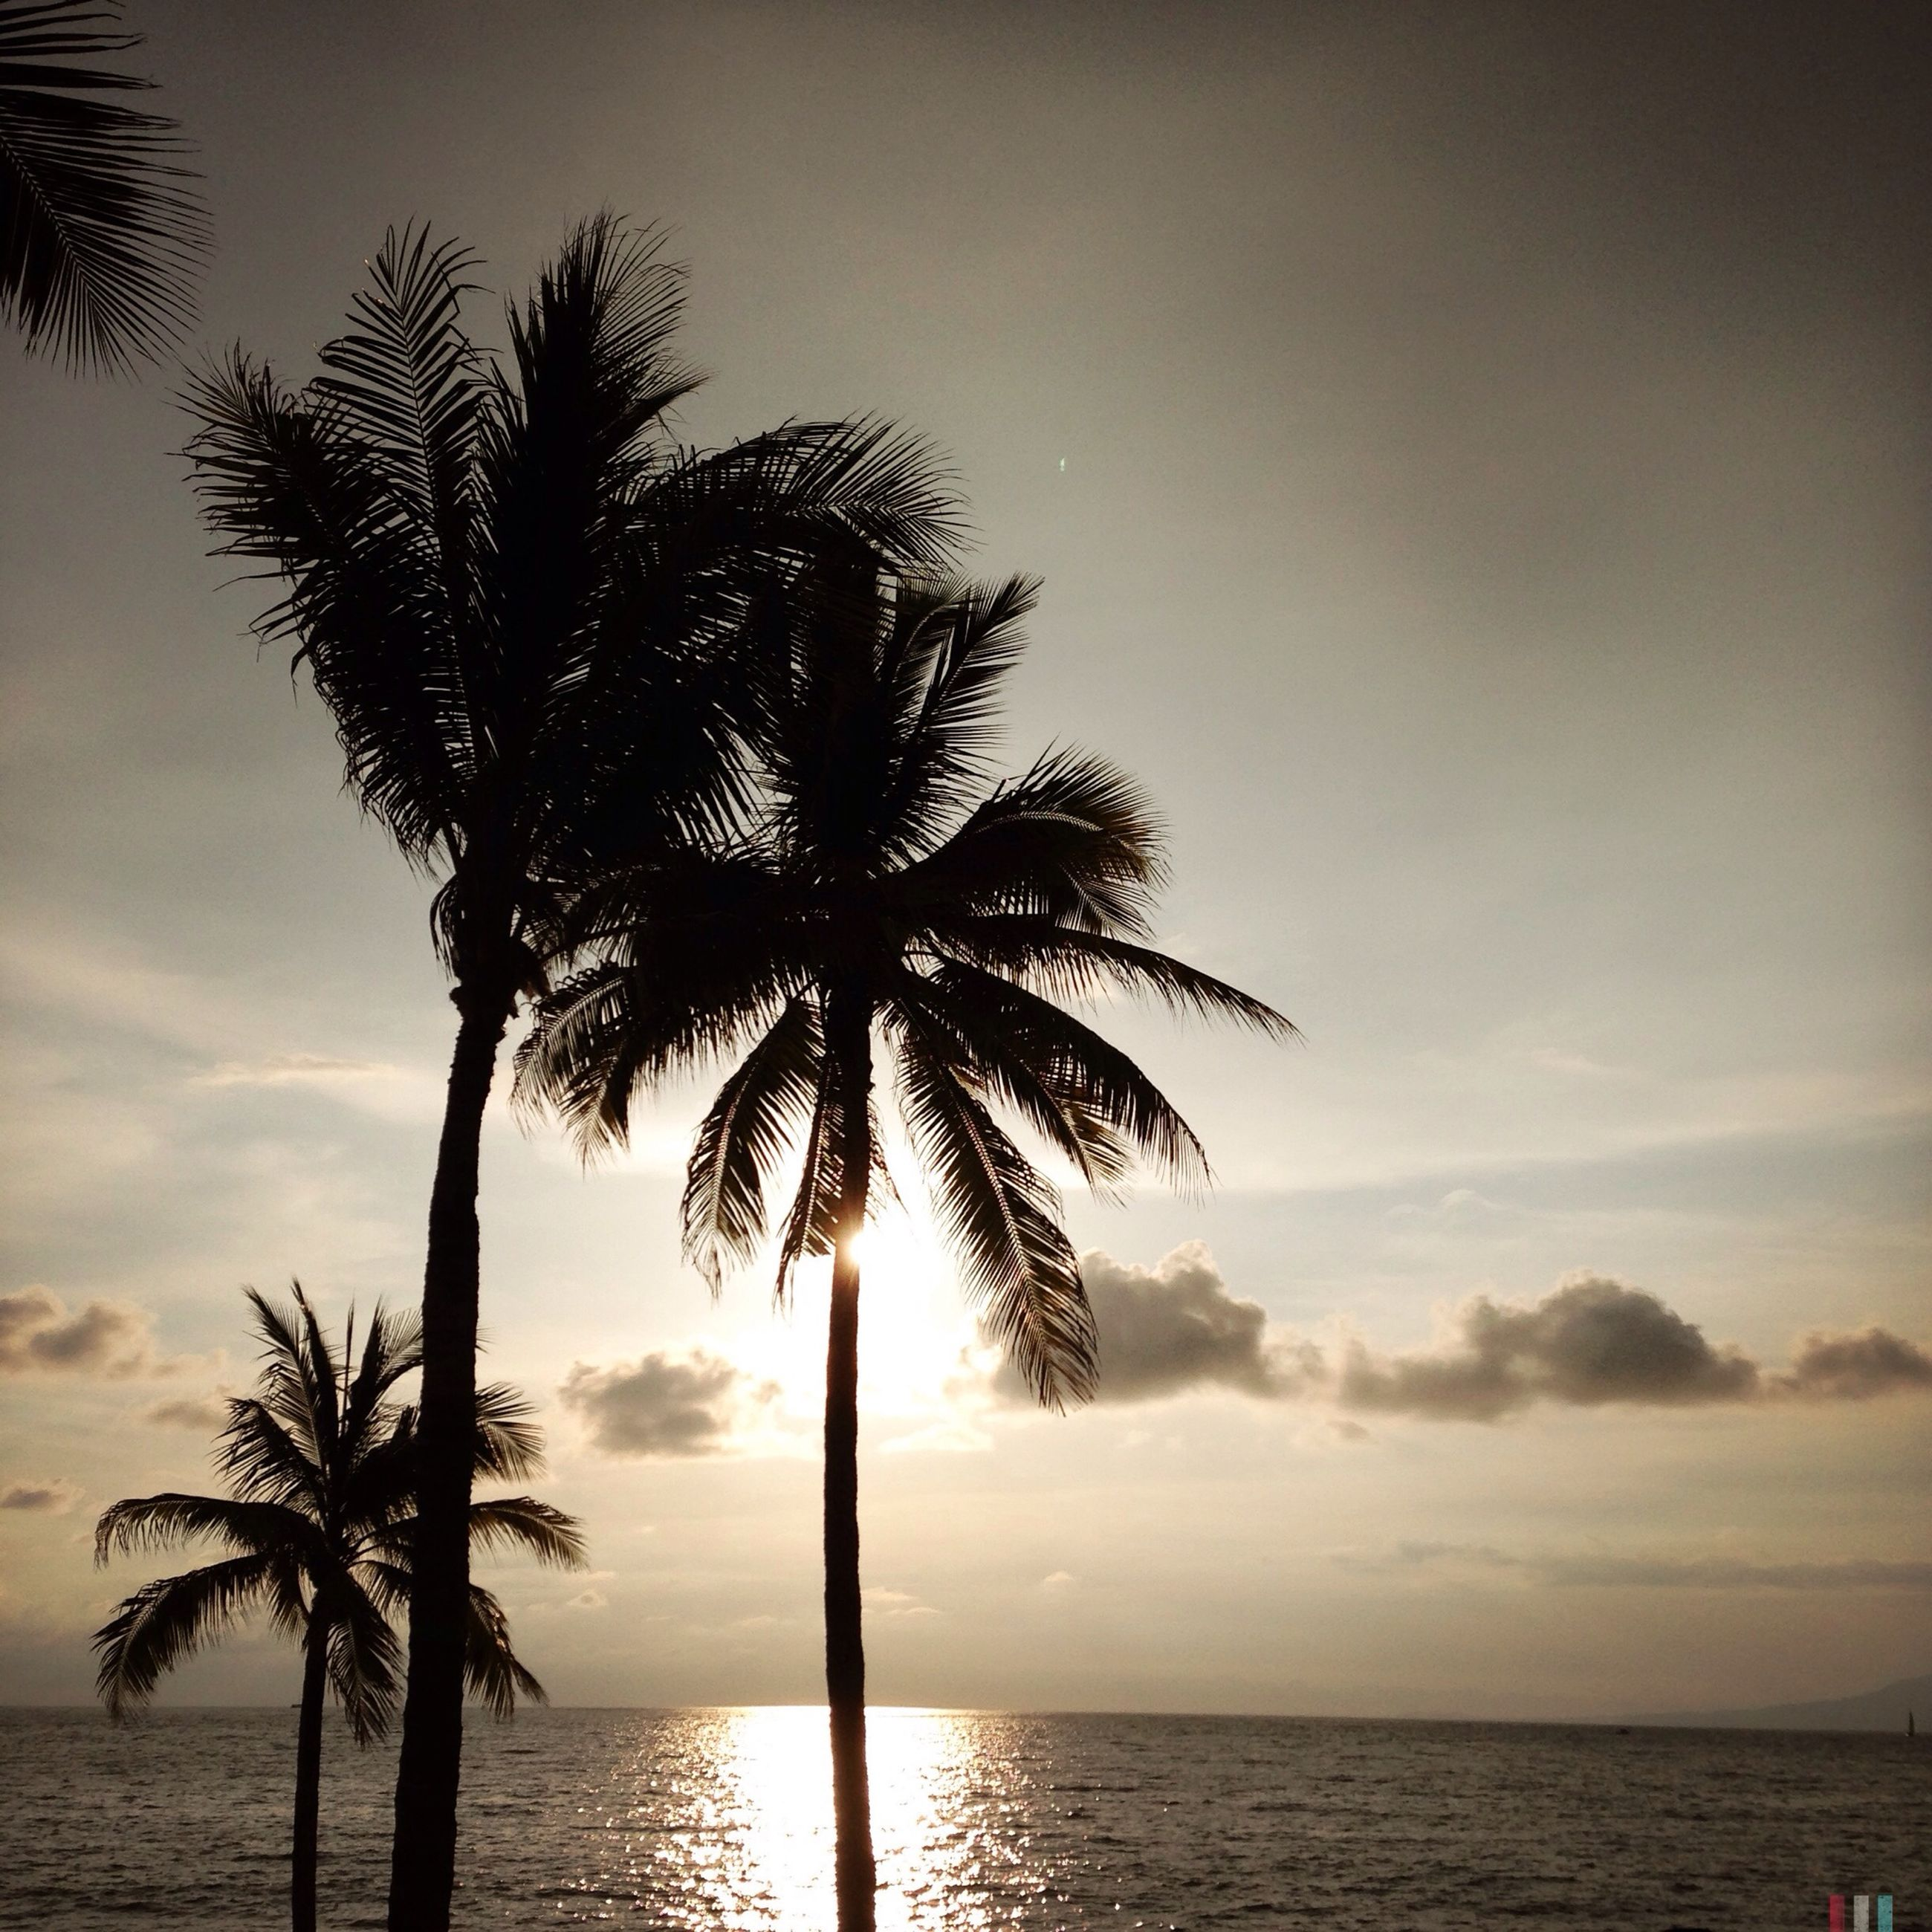 palm tree, silhouette, sea, tranquility, tree, tranquil scene, water, horizon over water, sunset, scenics, beauty in nature, sky, tree trunk, nature, beach, idyllic, coconut palm tree, growth, shore, palm frond